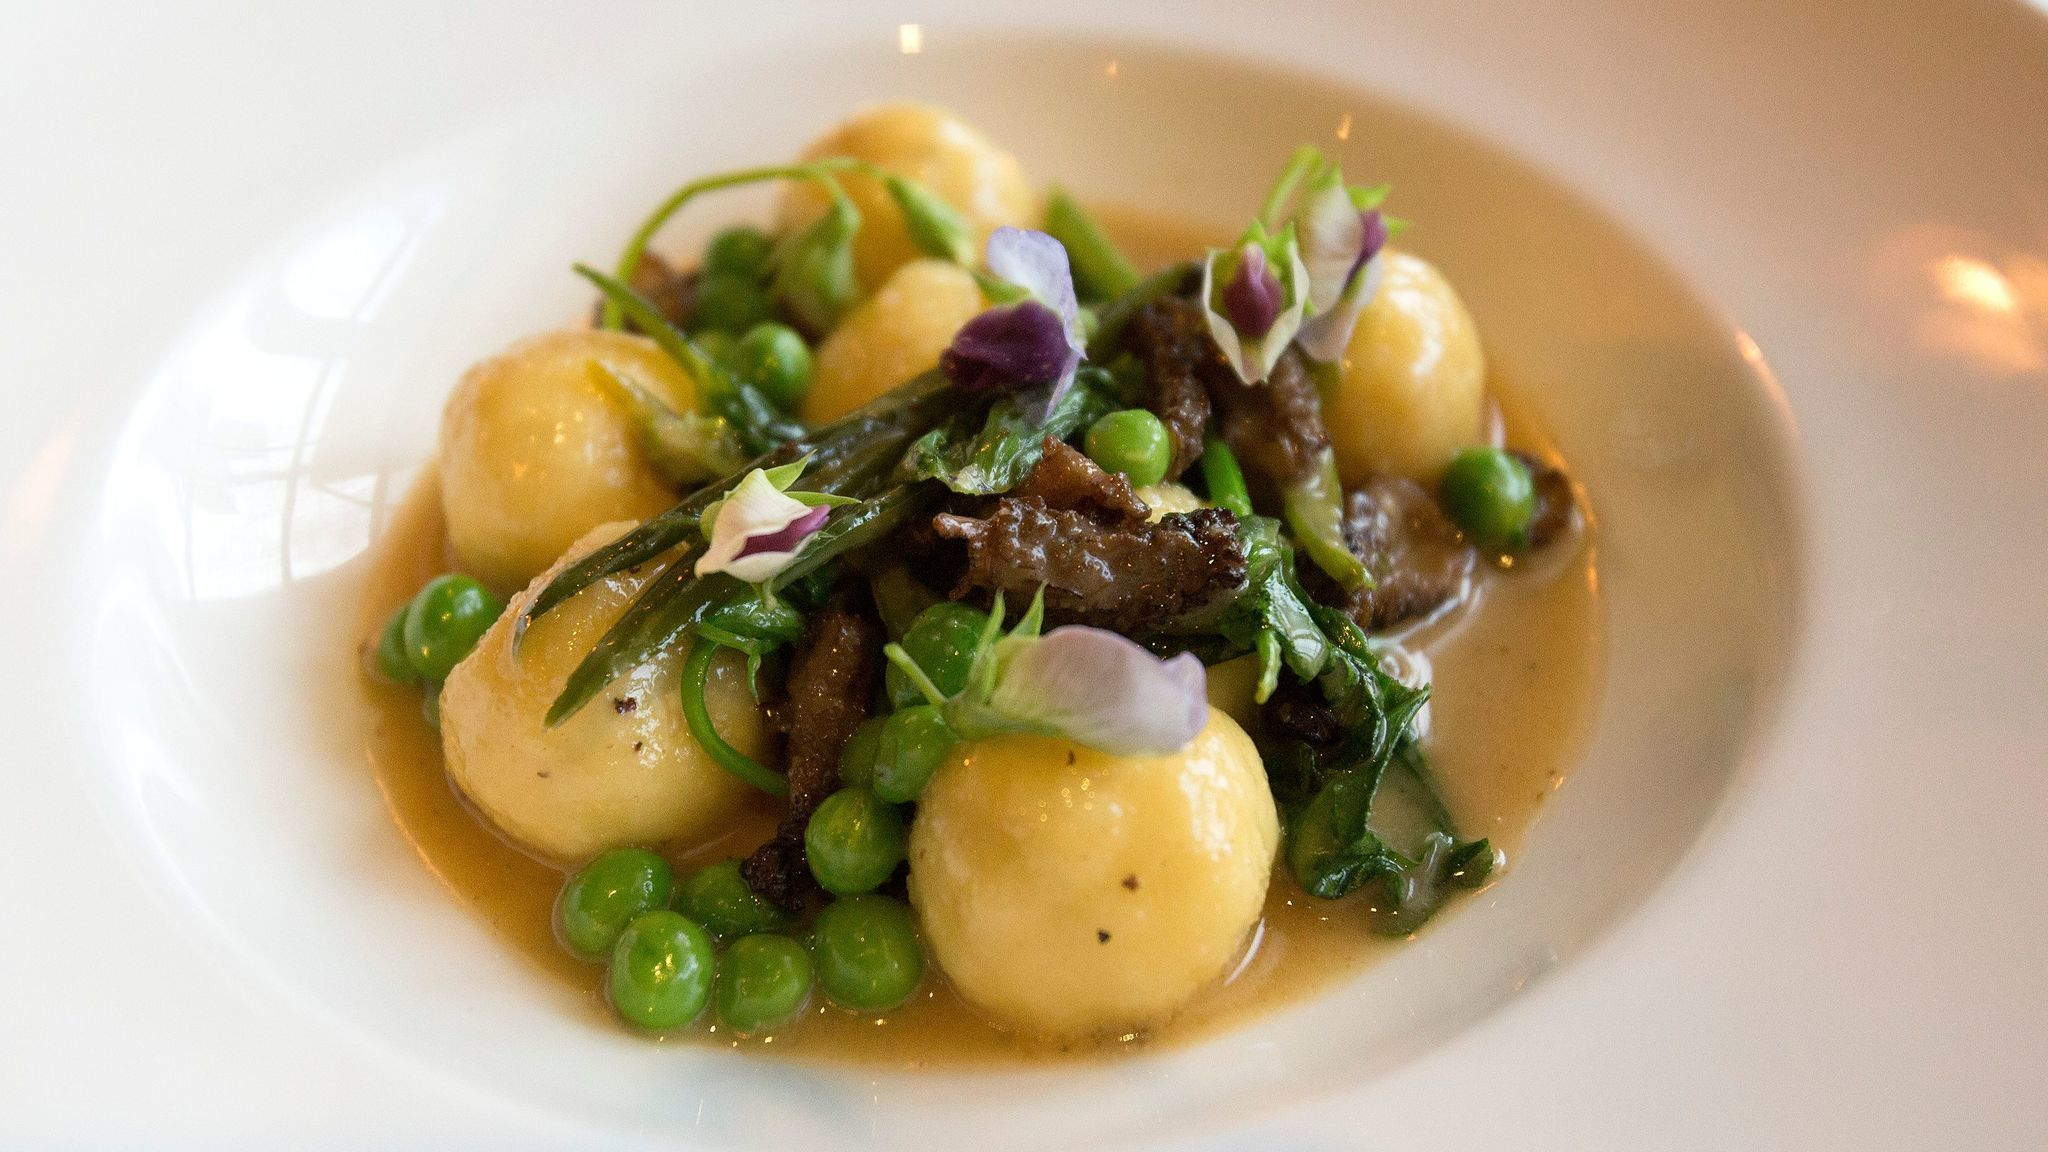 The ricotta gnudi with morels, garlic scapes and English peas at Osteria Mozza.